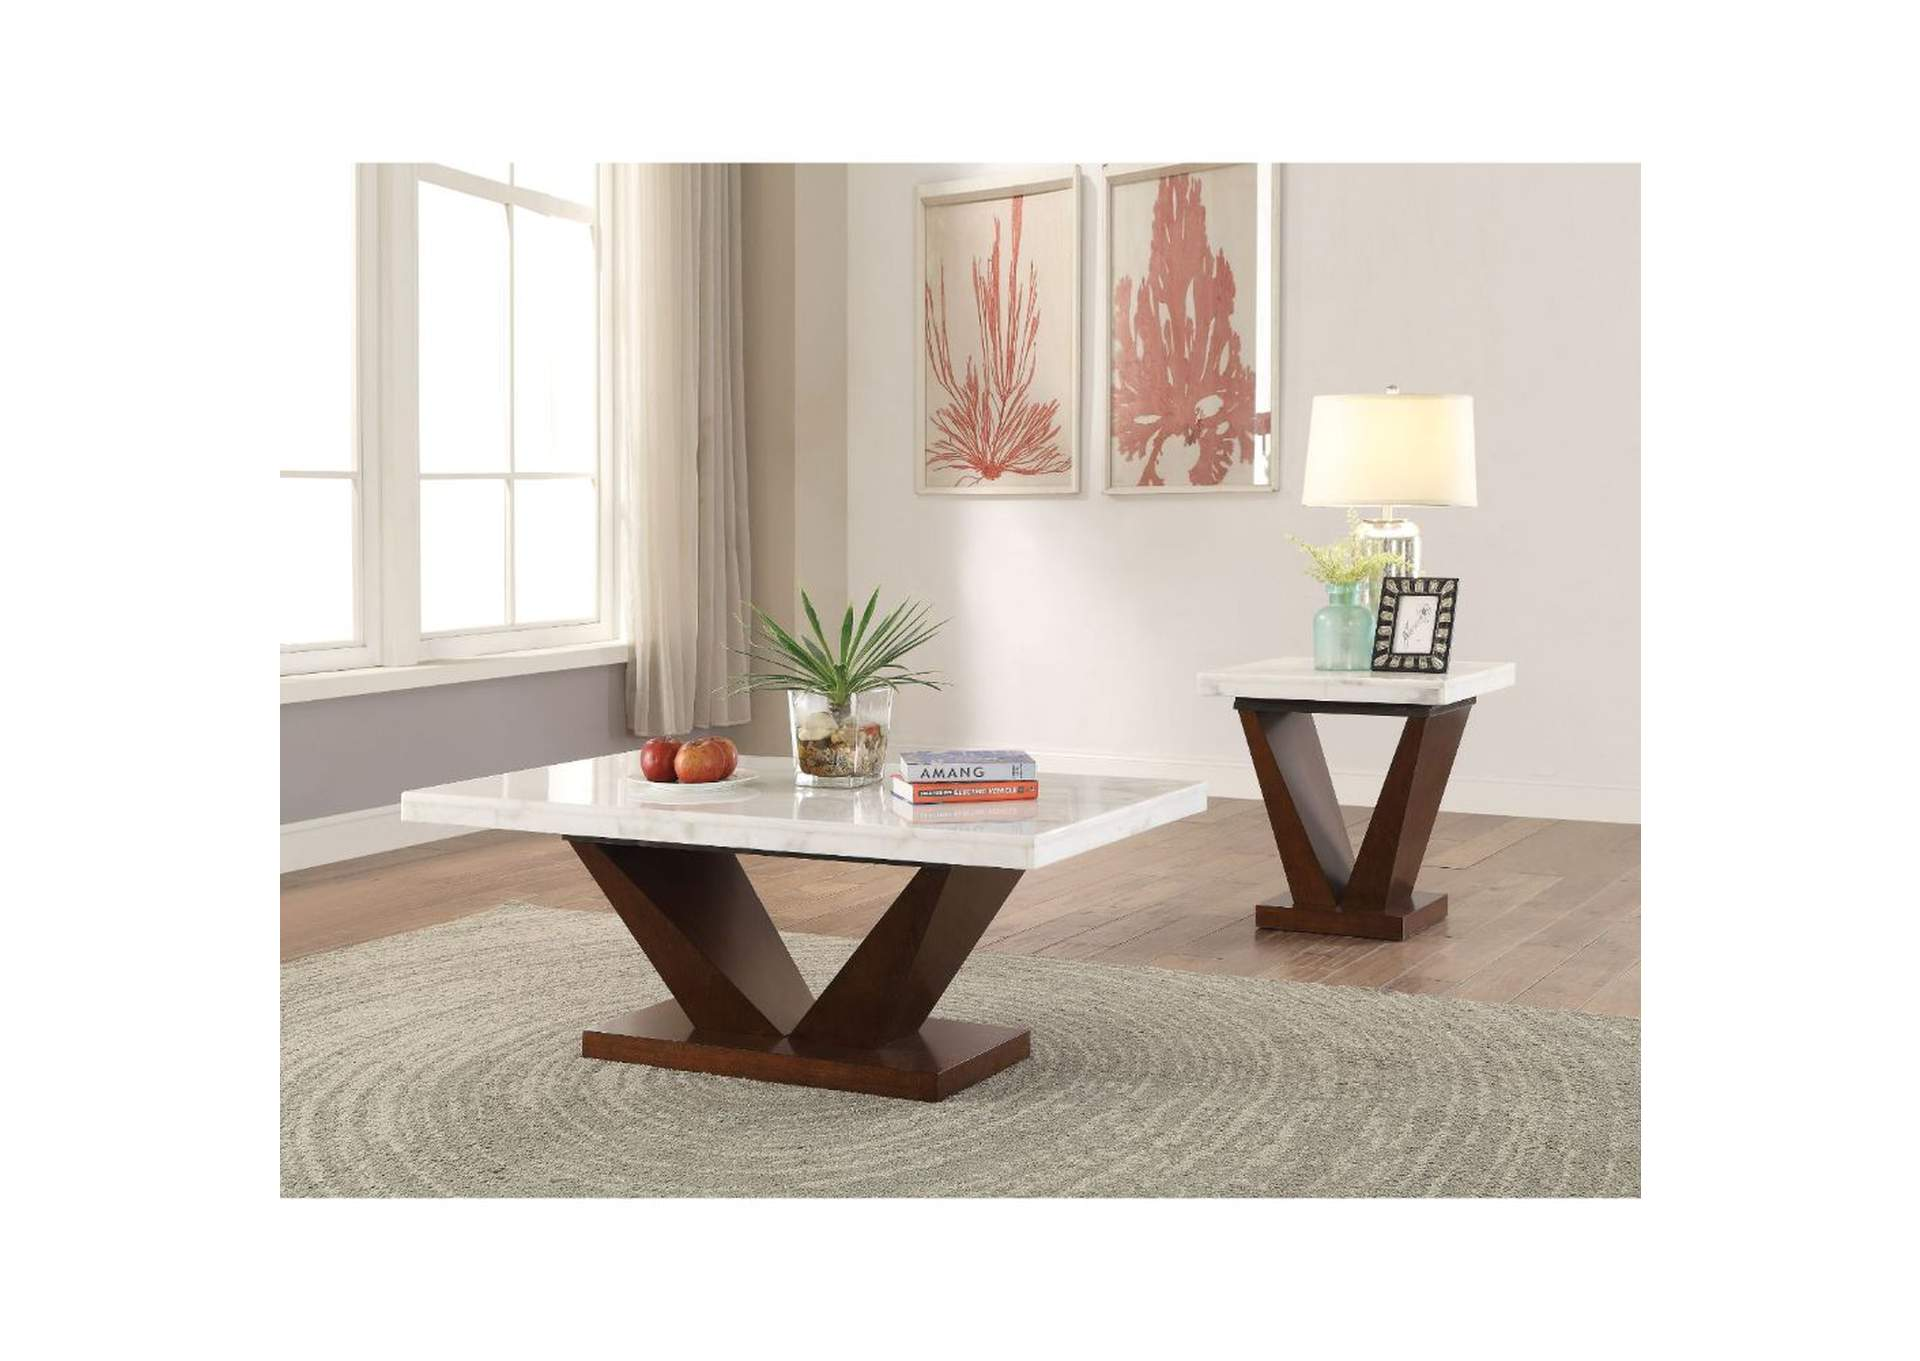 Forbes White Marble & Walnut Coffee Table,Acme